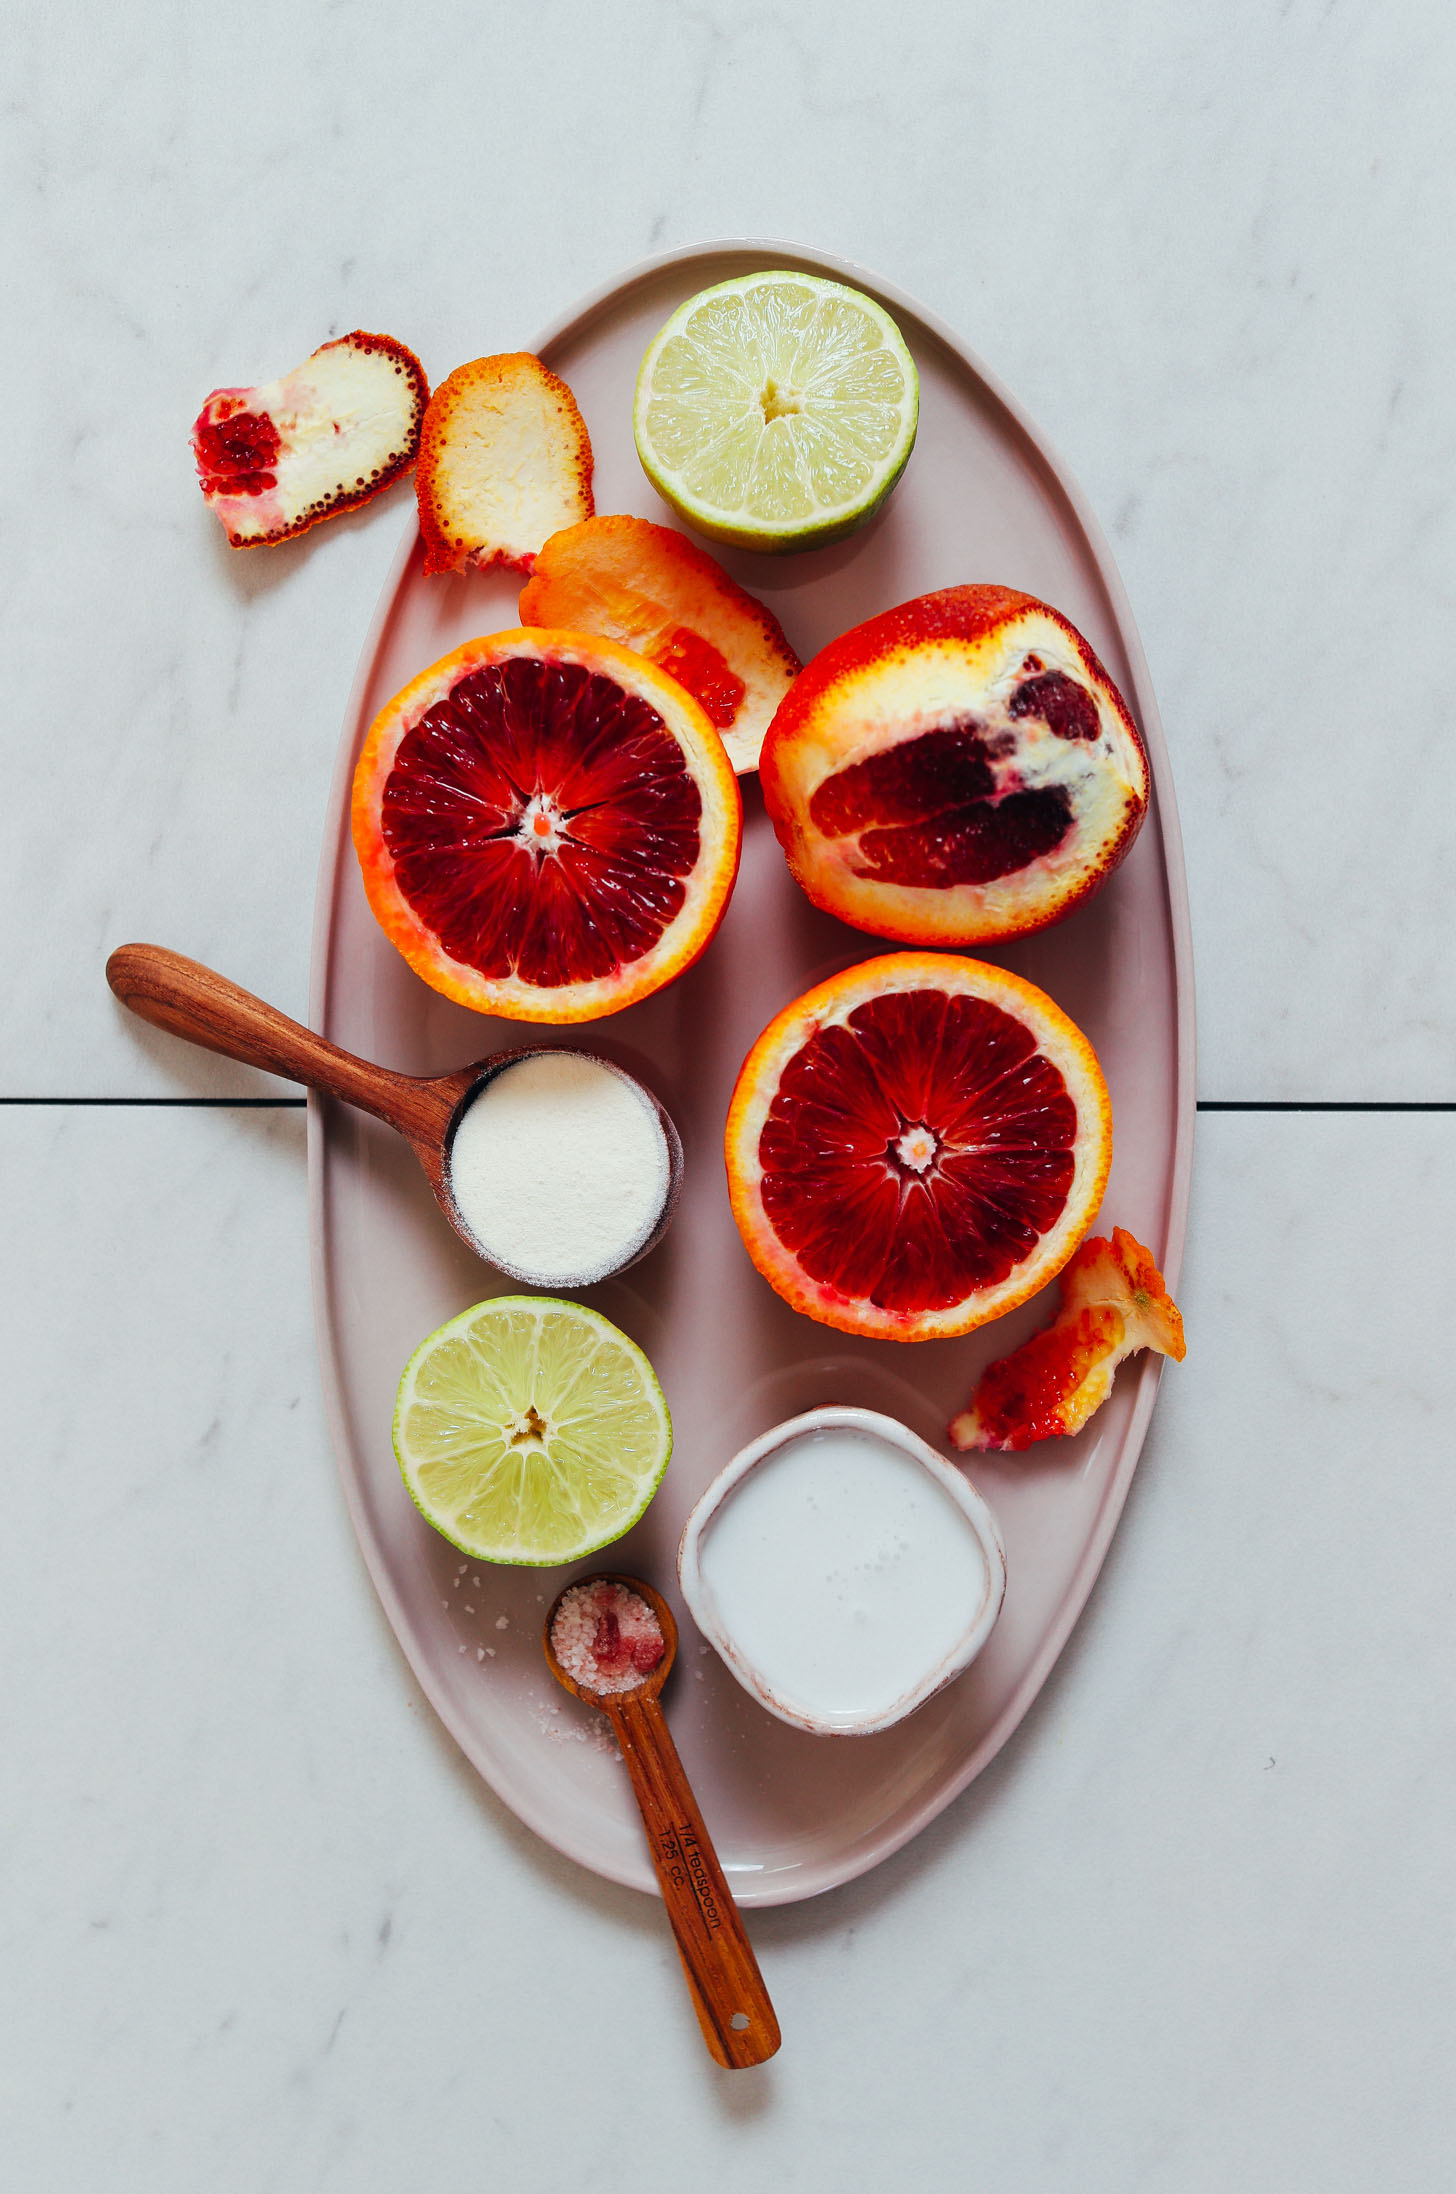 Platter of limes, blood oranges, coconut milk, collagen, and pink salt for making our Creamsicle Smoothie recipe